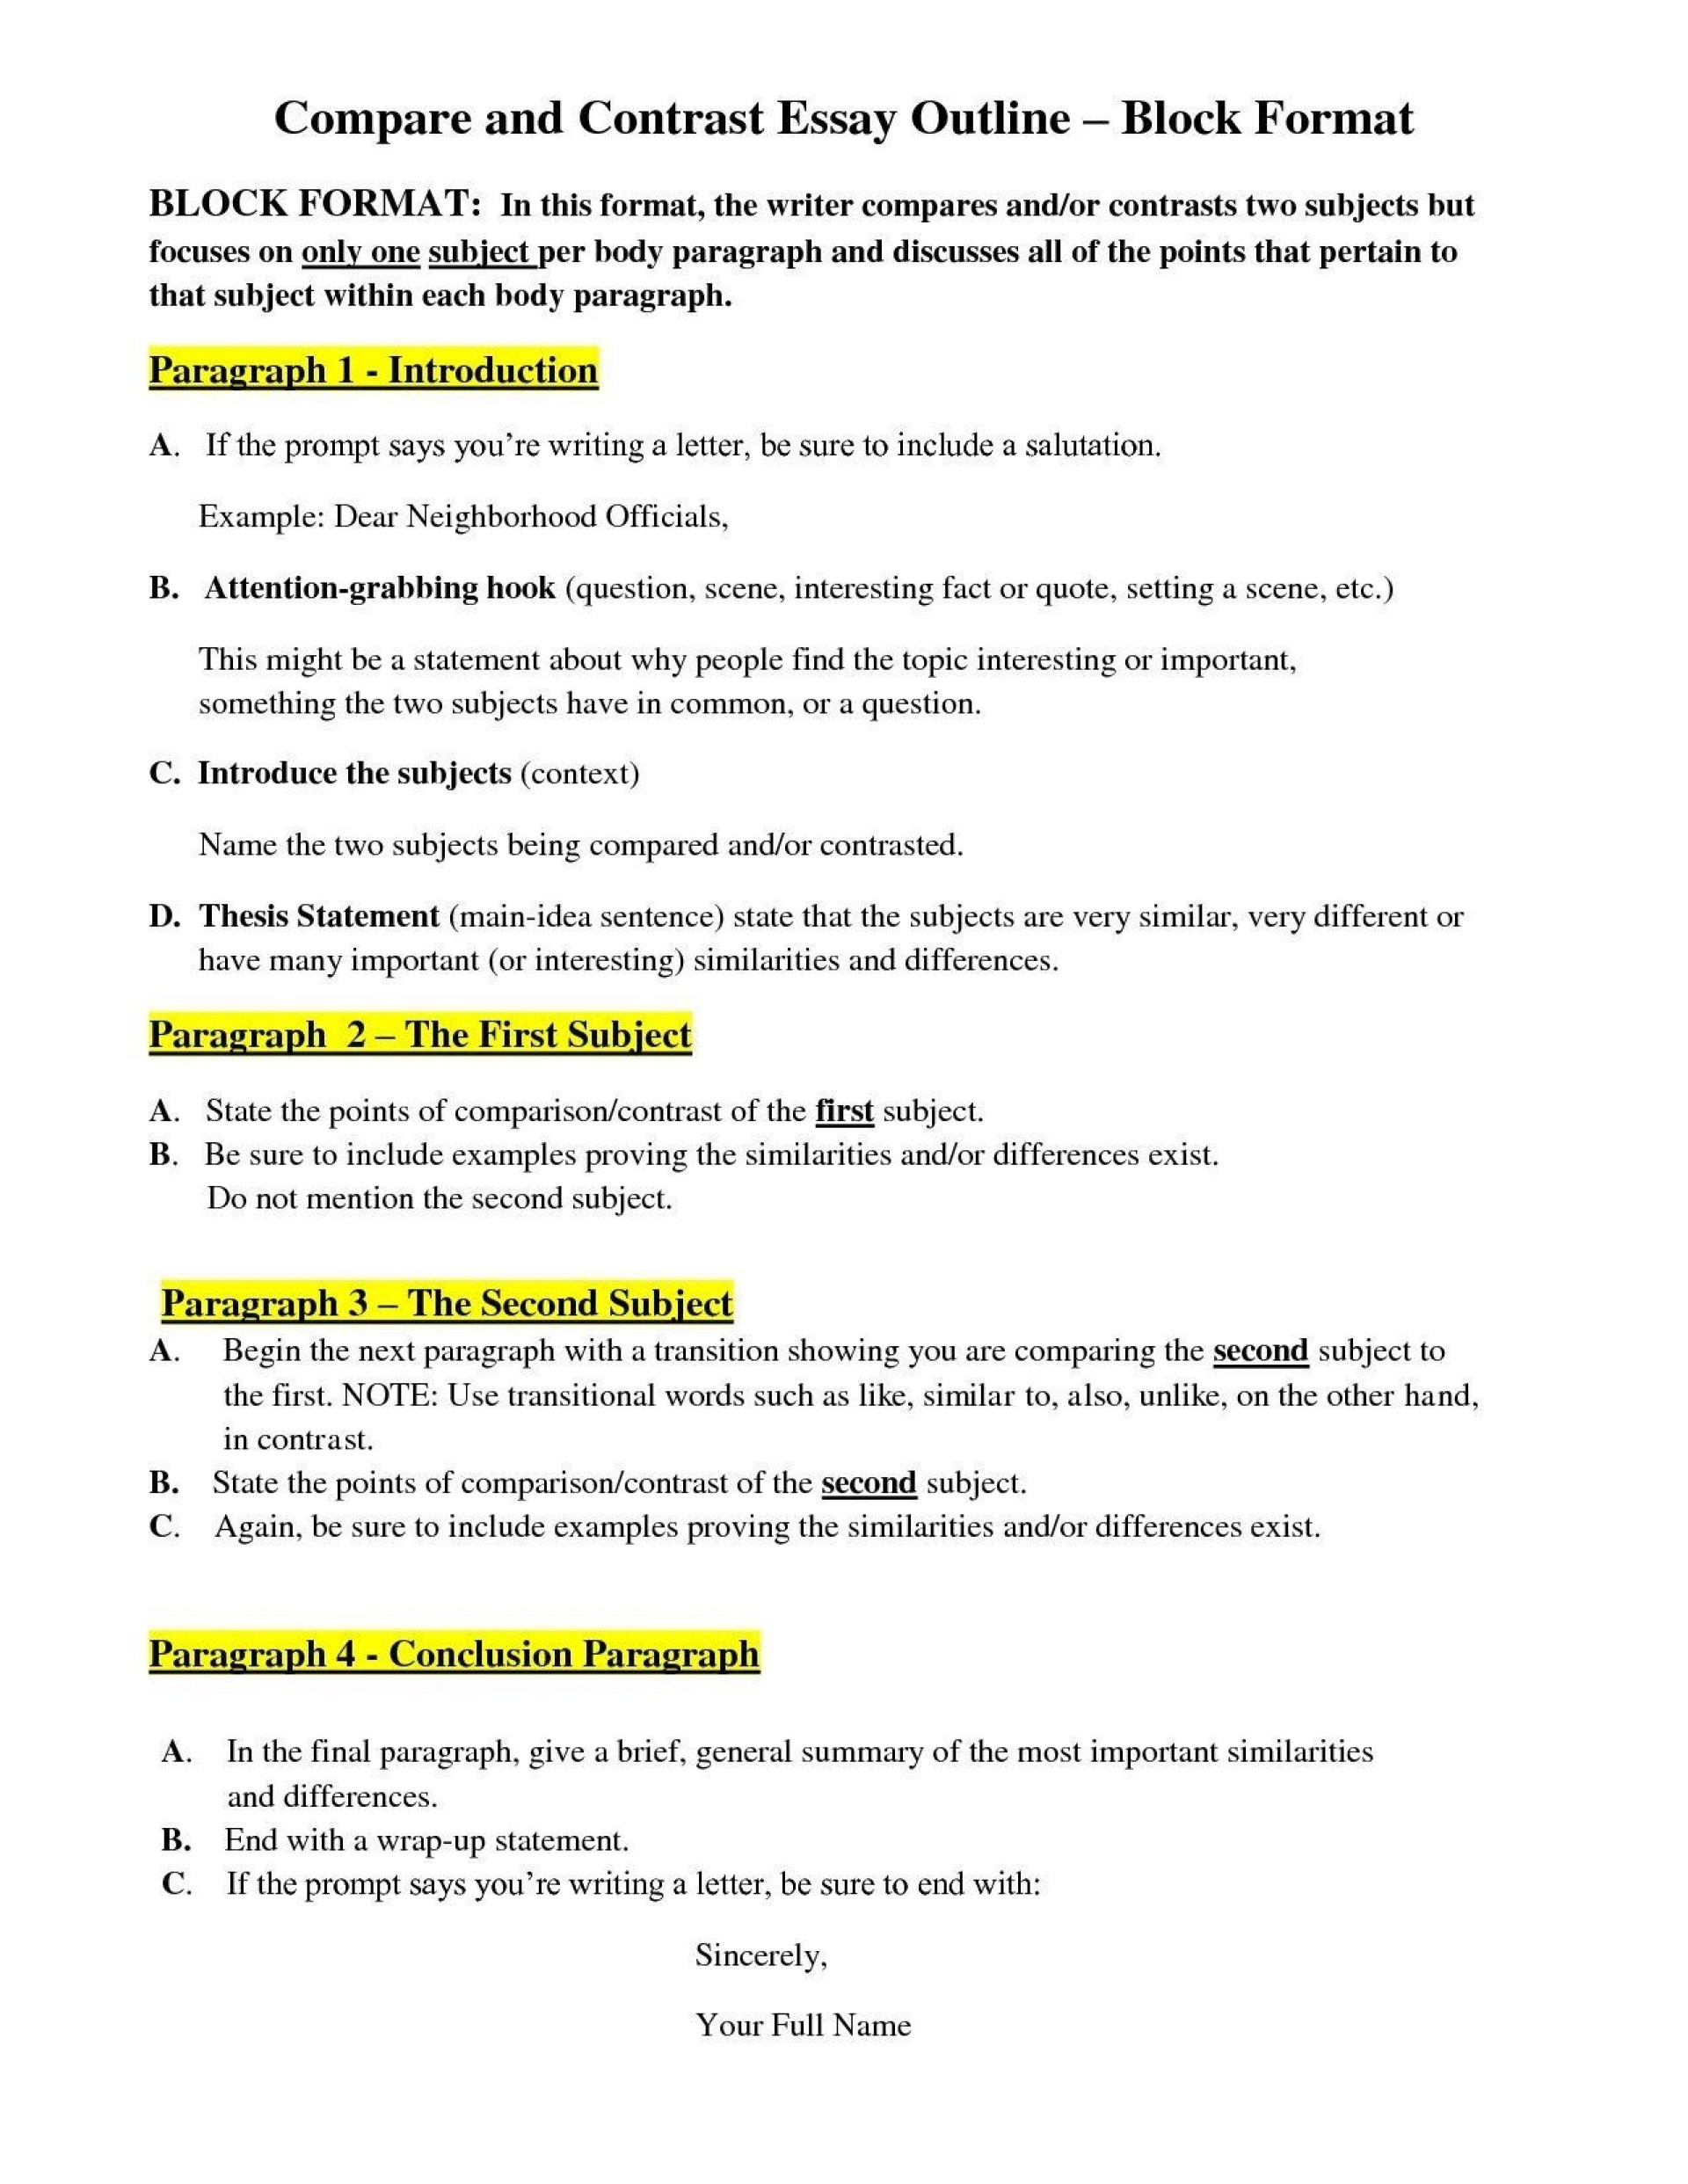 014 Essay Examplempare Andntrastmparison Best Examples Of Scenario In 6th Grade An Goo 3rd Food 5th Middle School Block Format Pdf High 4th Vs Striking Compare And Contrast Example Elementary Fourth For College Students 1920